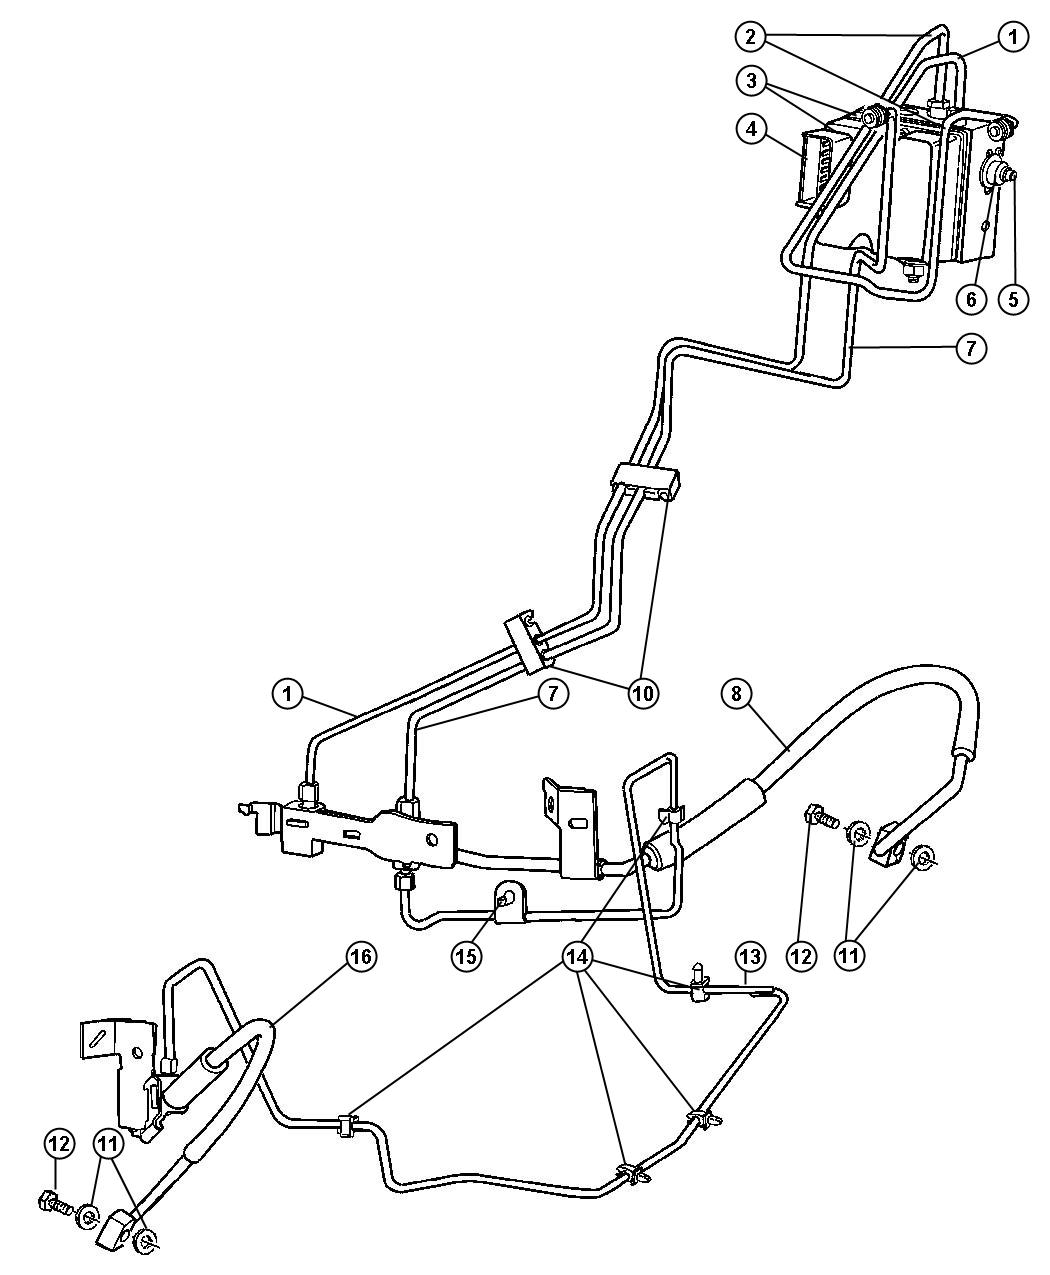 Dodge Dakota Brake Line Diagram Pictures To Pin On